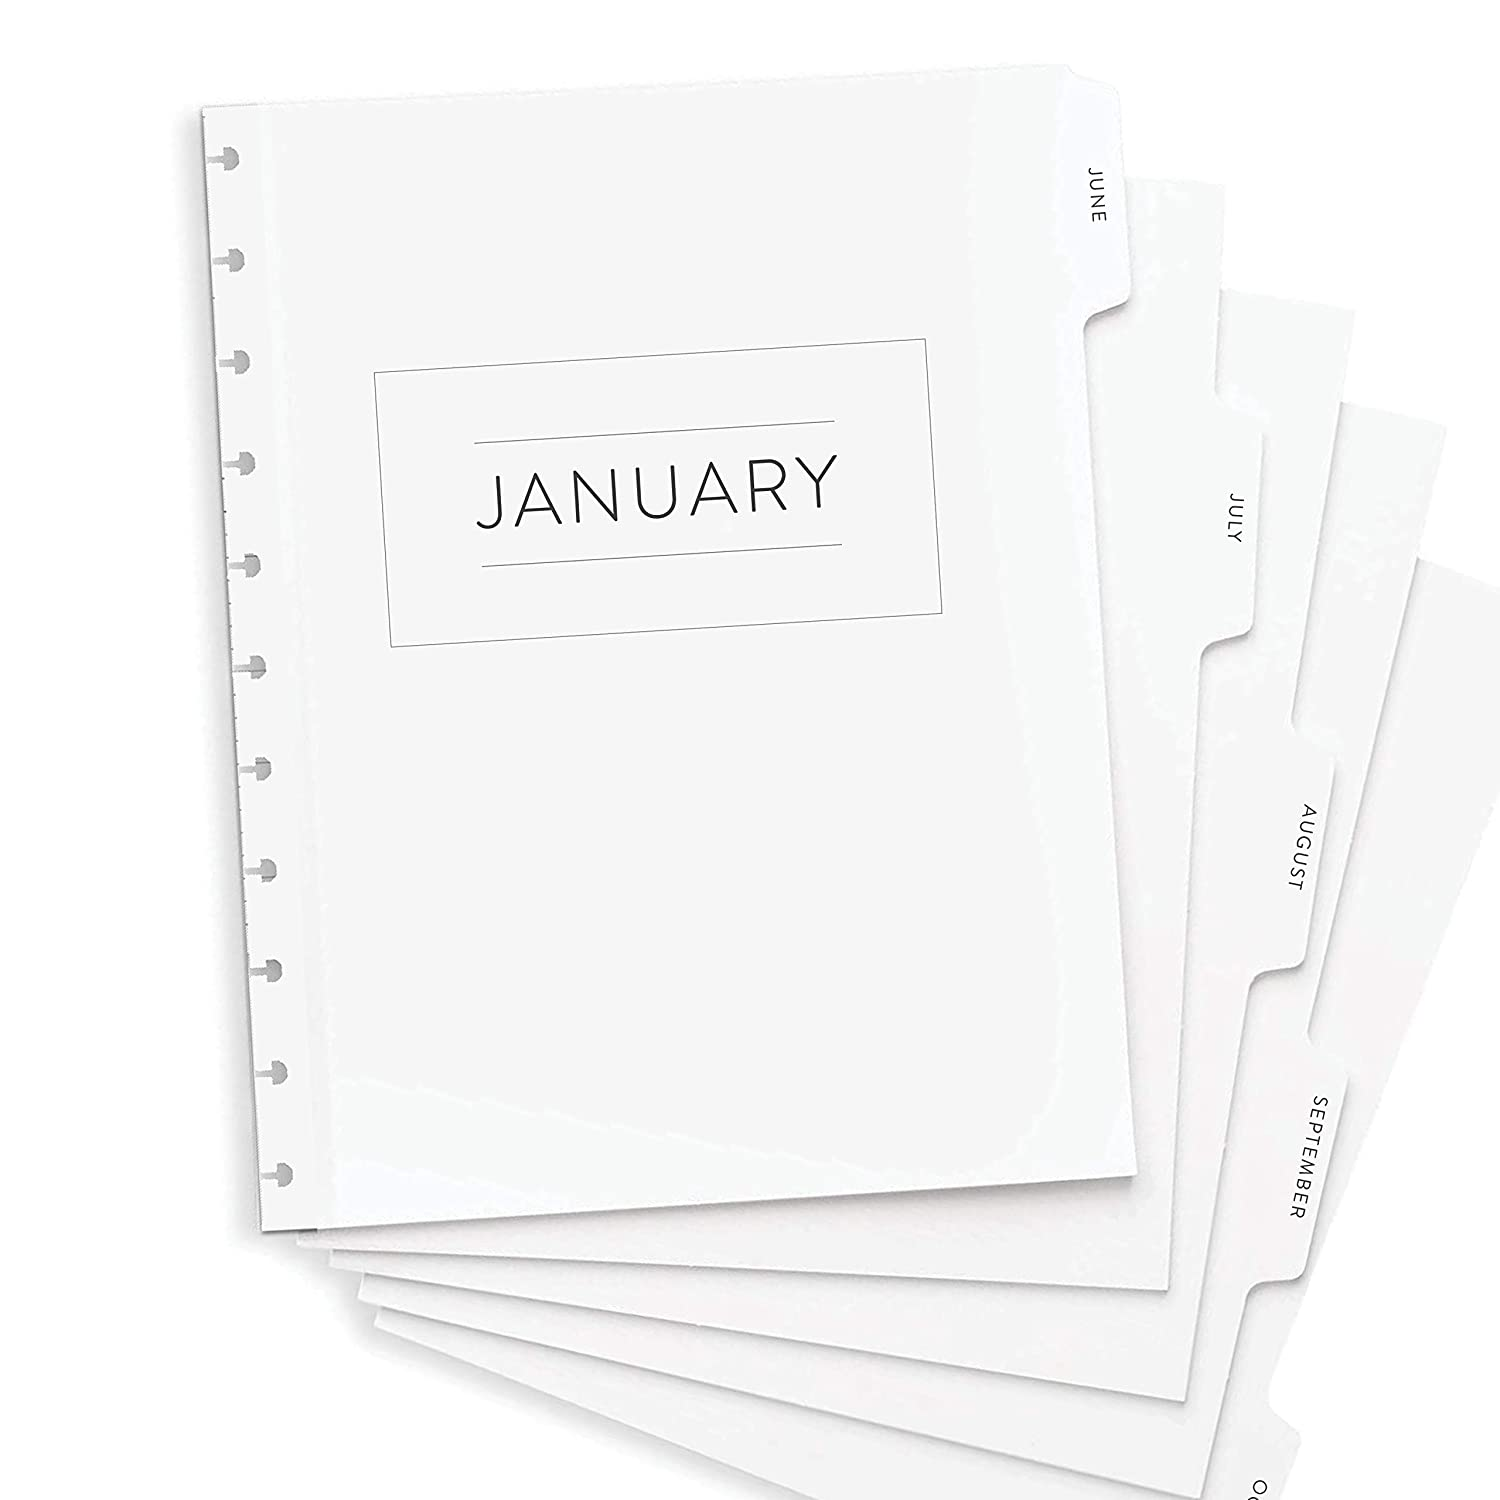 "BetterNote 2021 Monthly Calendar with Tabbed Dividers for Disc-Bound Planners, Fits 11-Disc Levenger Circa, Arc by Staples, TUL by Office Depot, Letter Size 8.5""x11"" Classic (Notebook Not Included)"